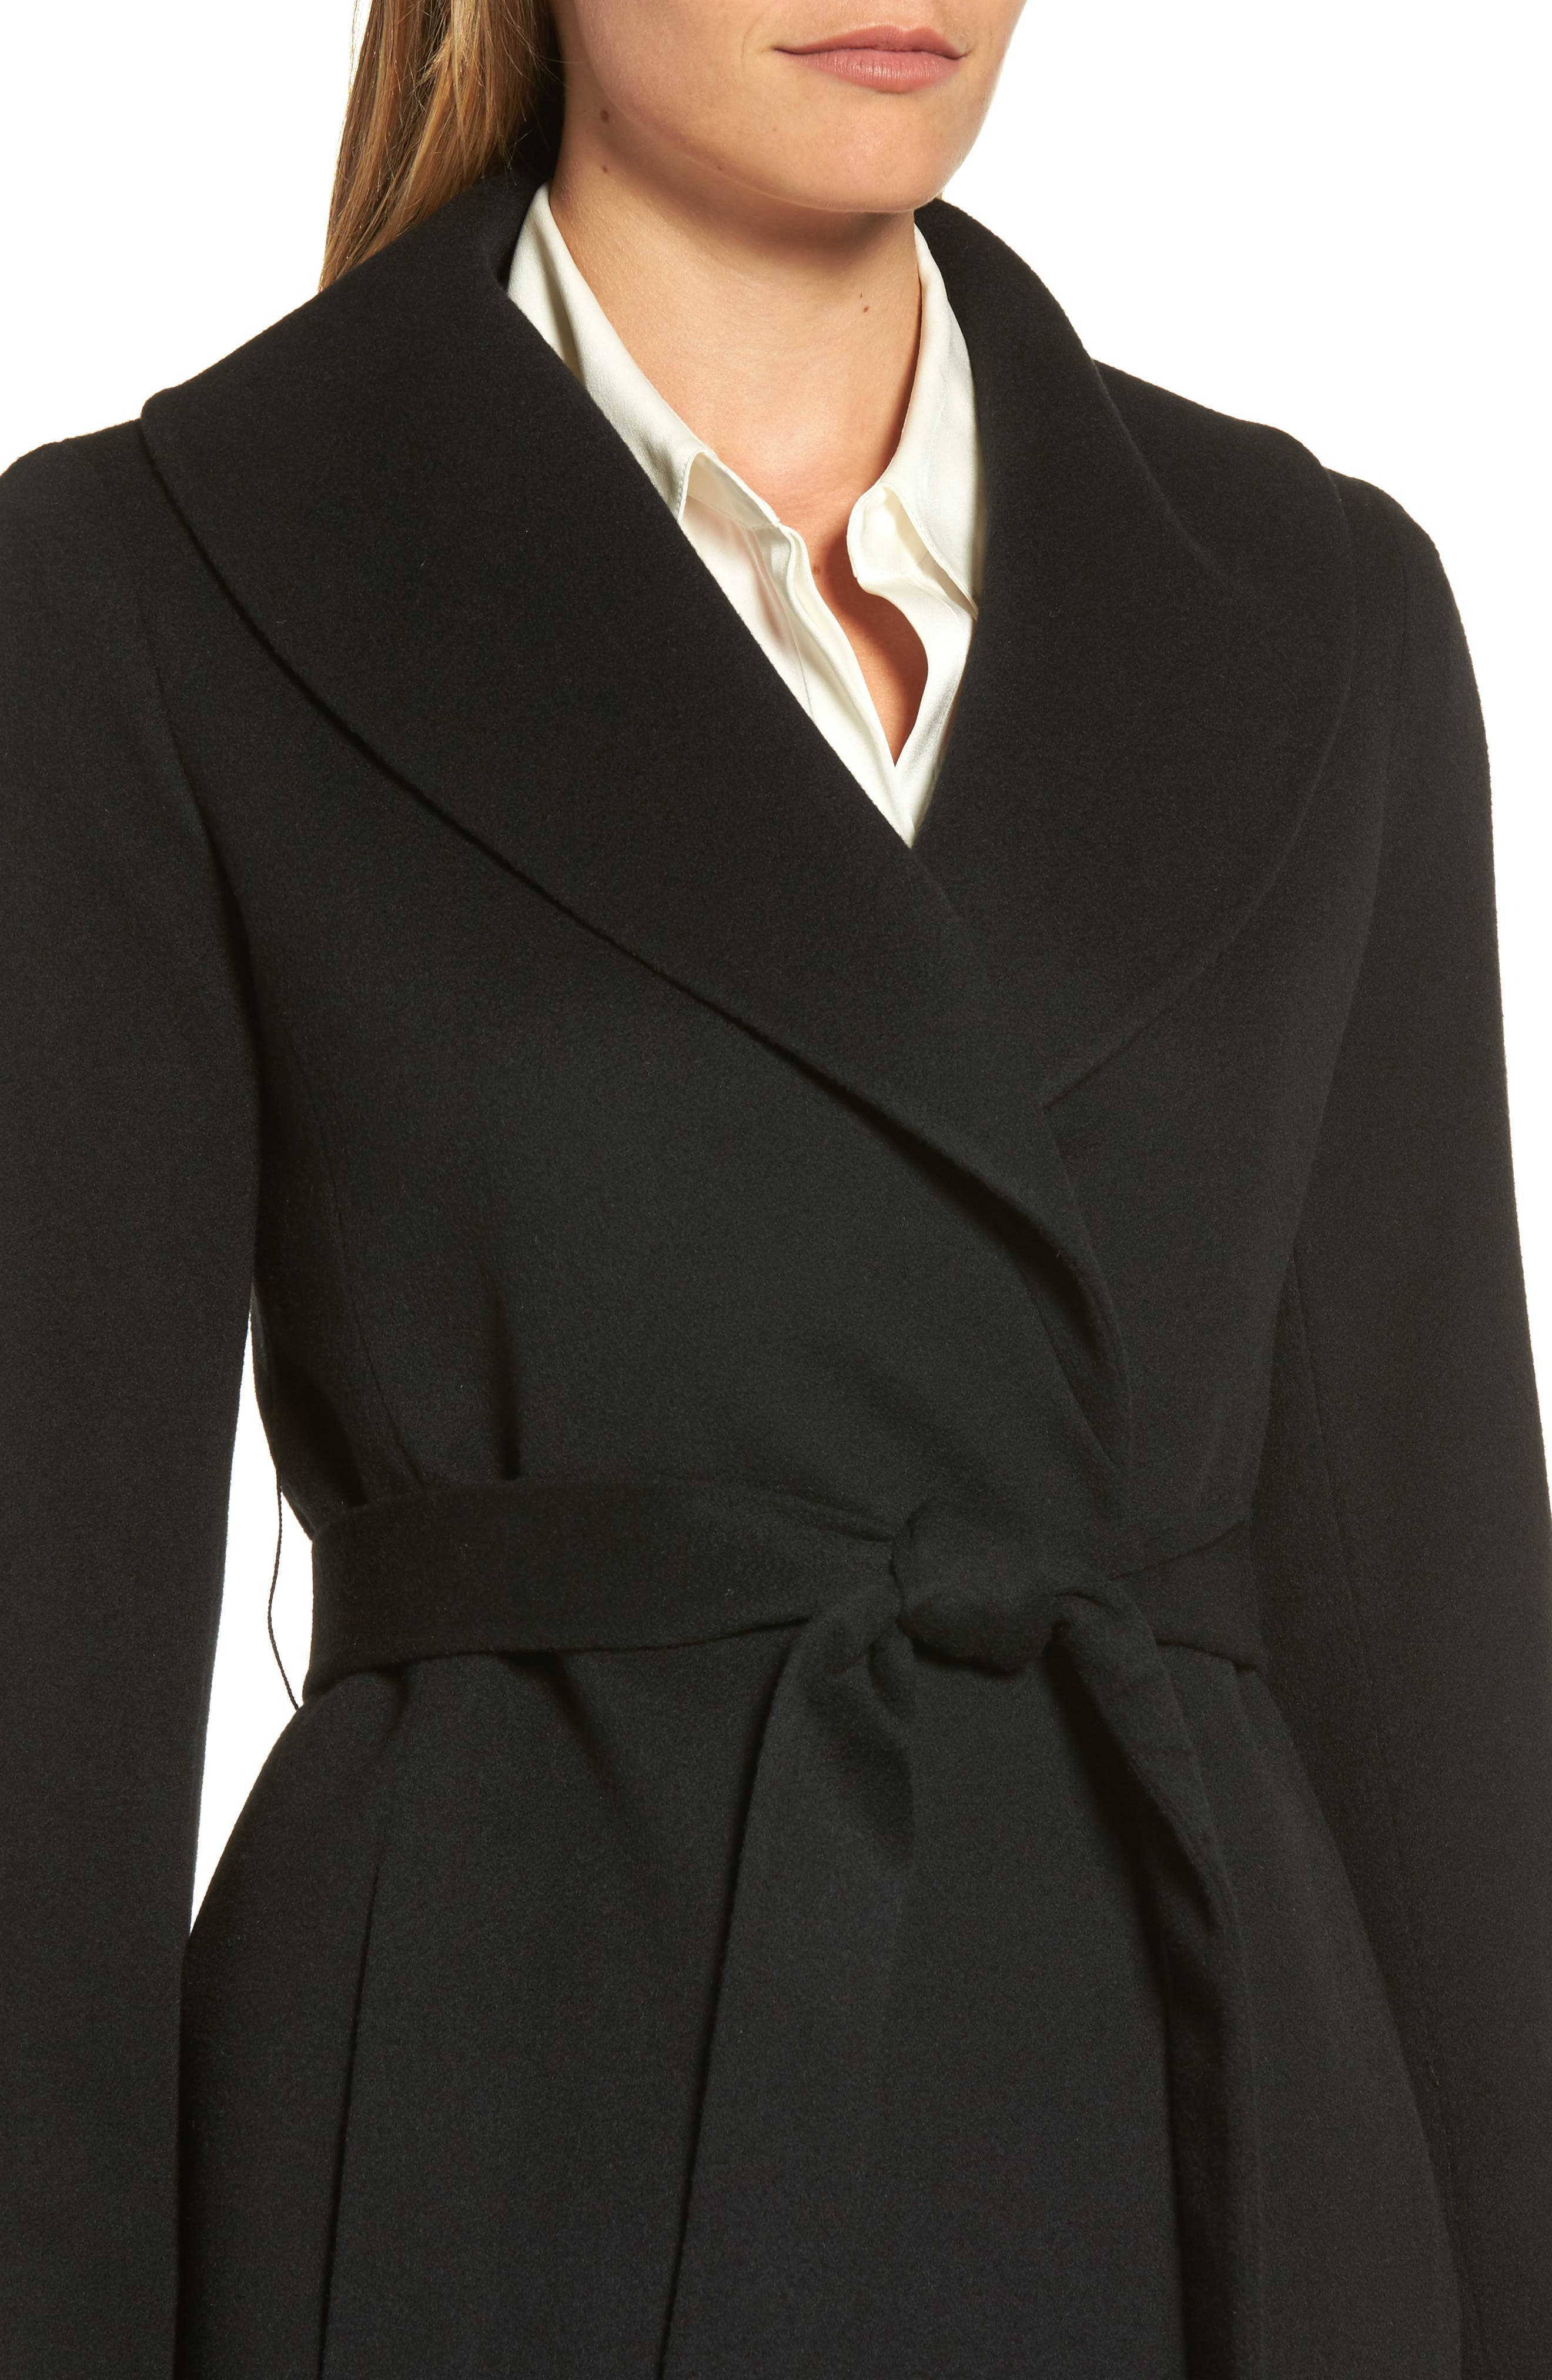 Shawl Collar Cashmere Wrap Coat,                             Alternate thumbnail 4, color,                             001